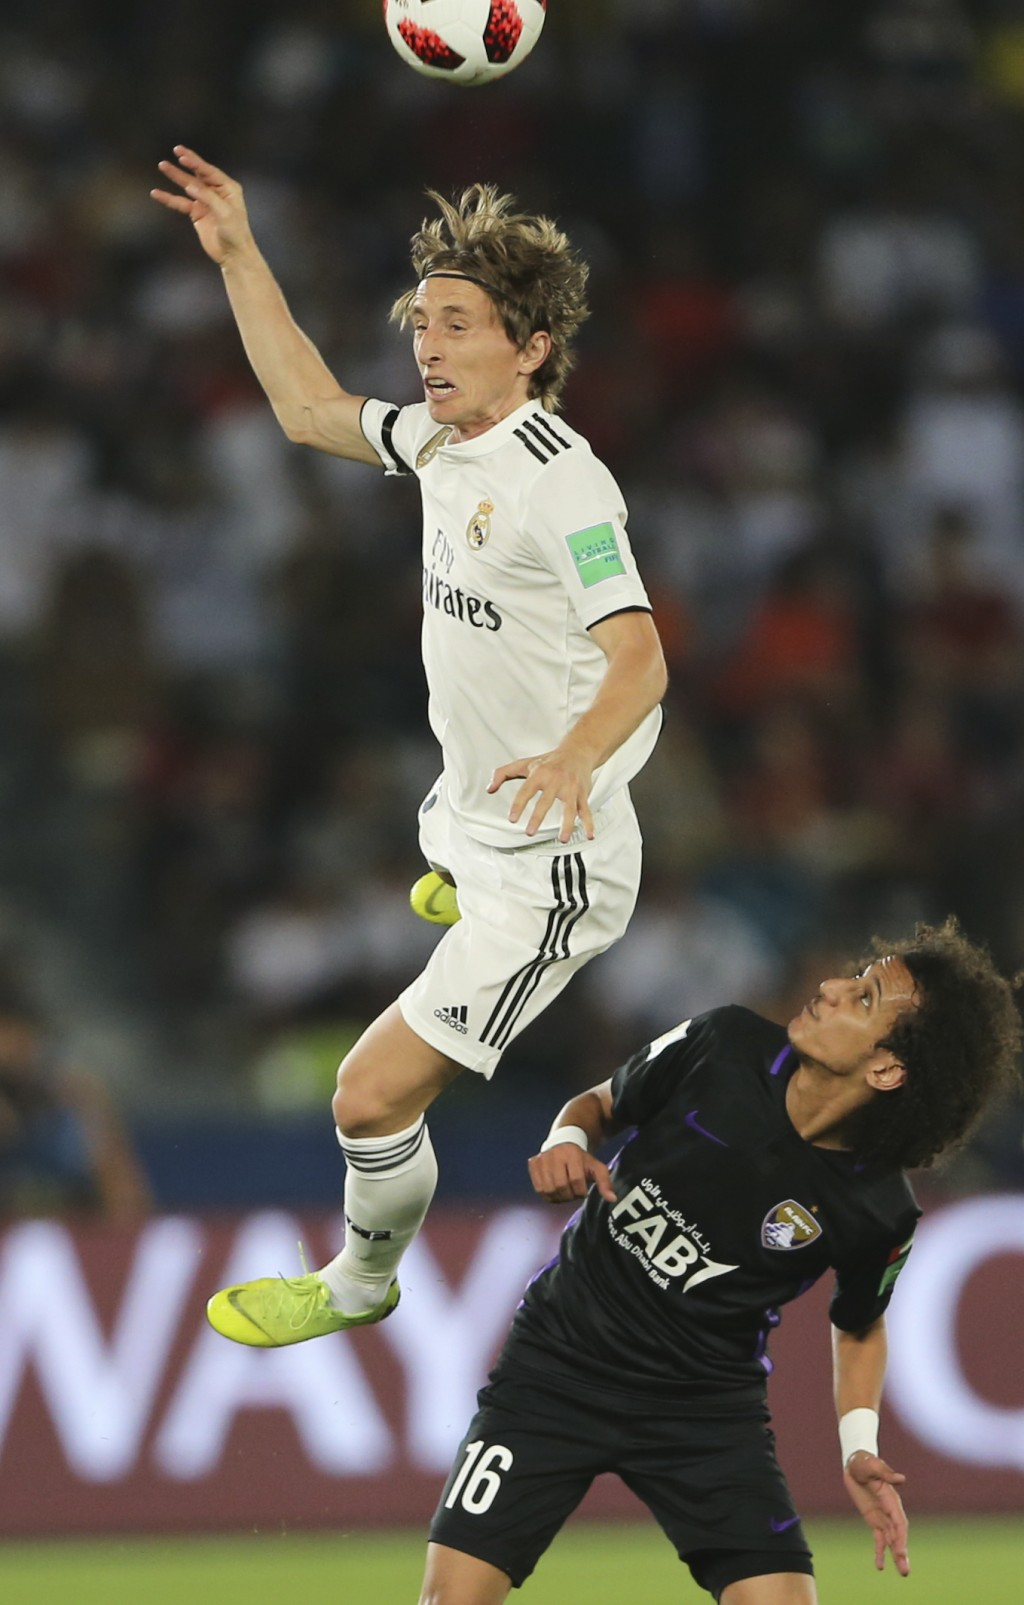 Real Madrid's Luka Modric heads the ball above Emirates's Al Ain Mohamed Abdulrahman during the Club World Cup final soccer match between Real Madrid ...